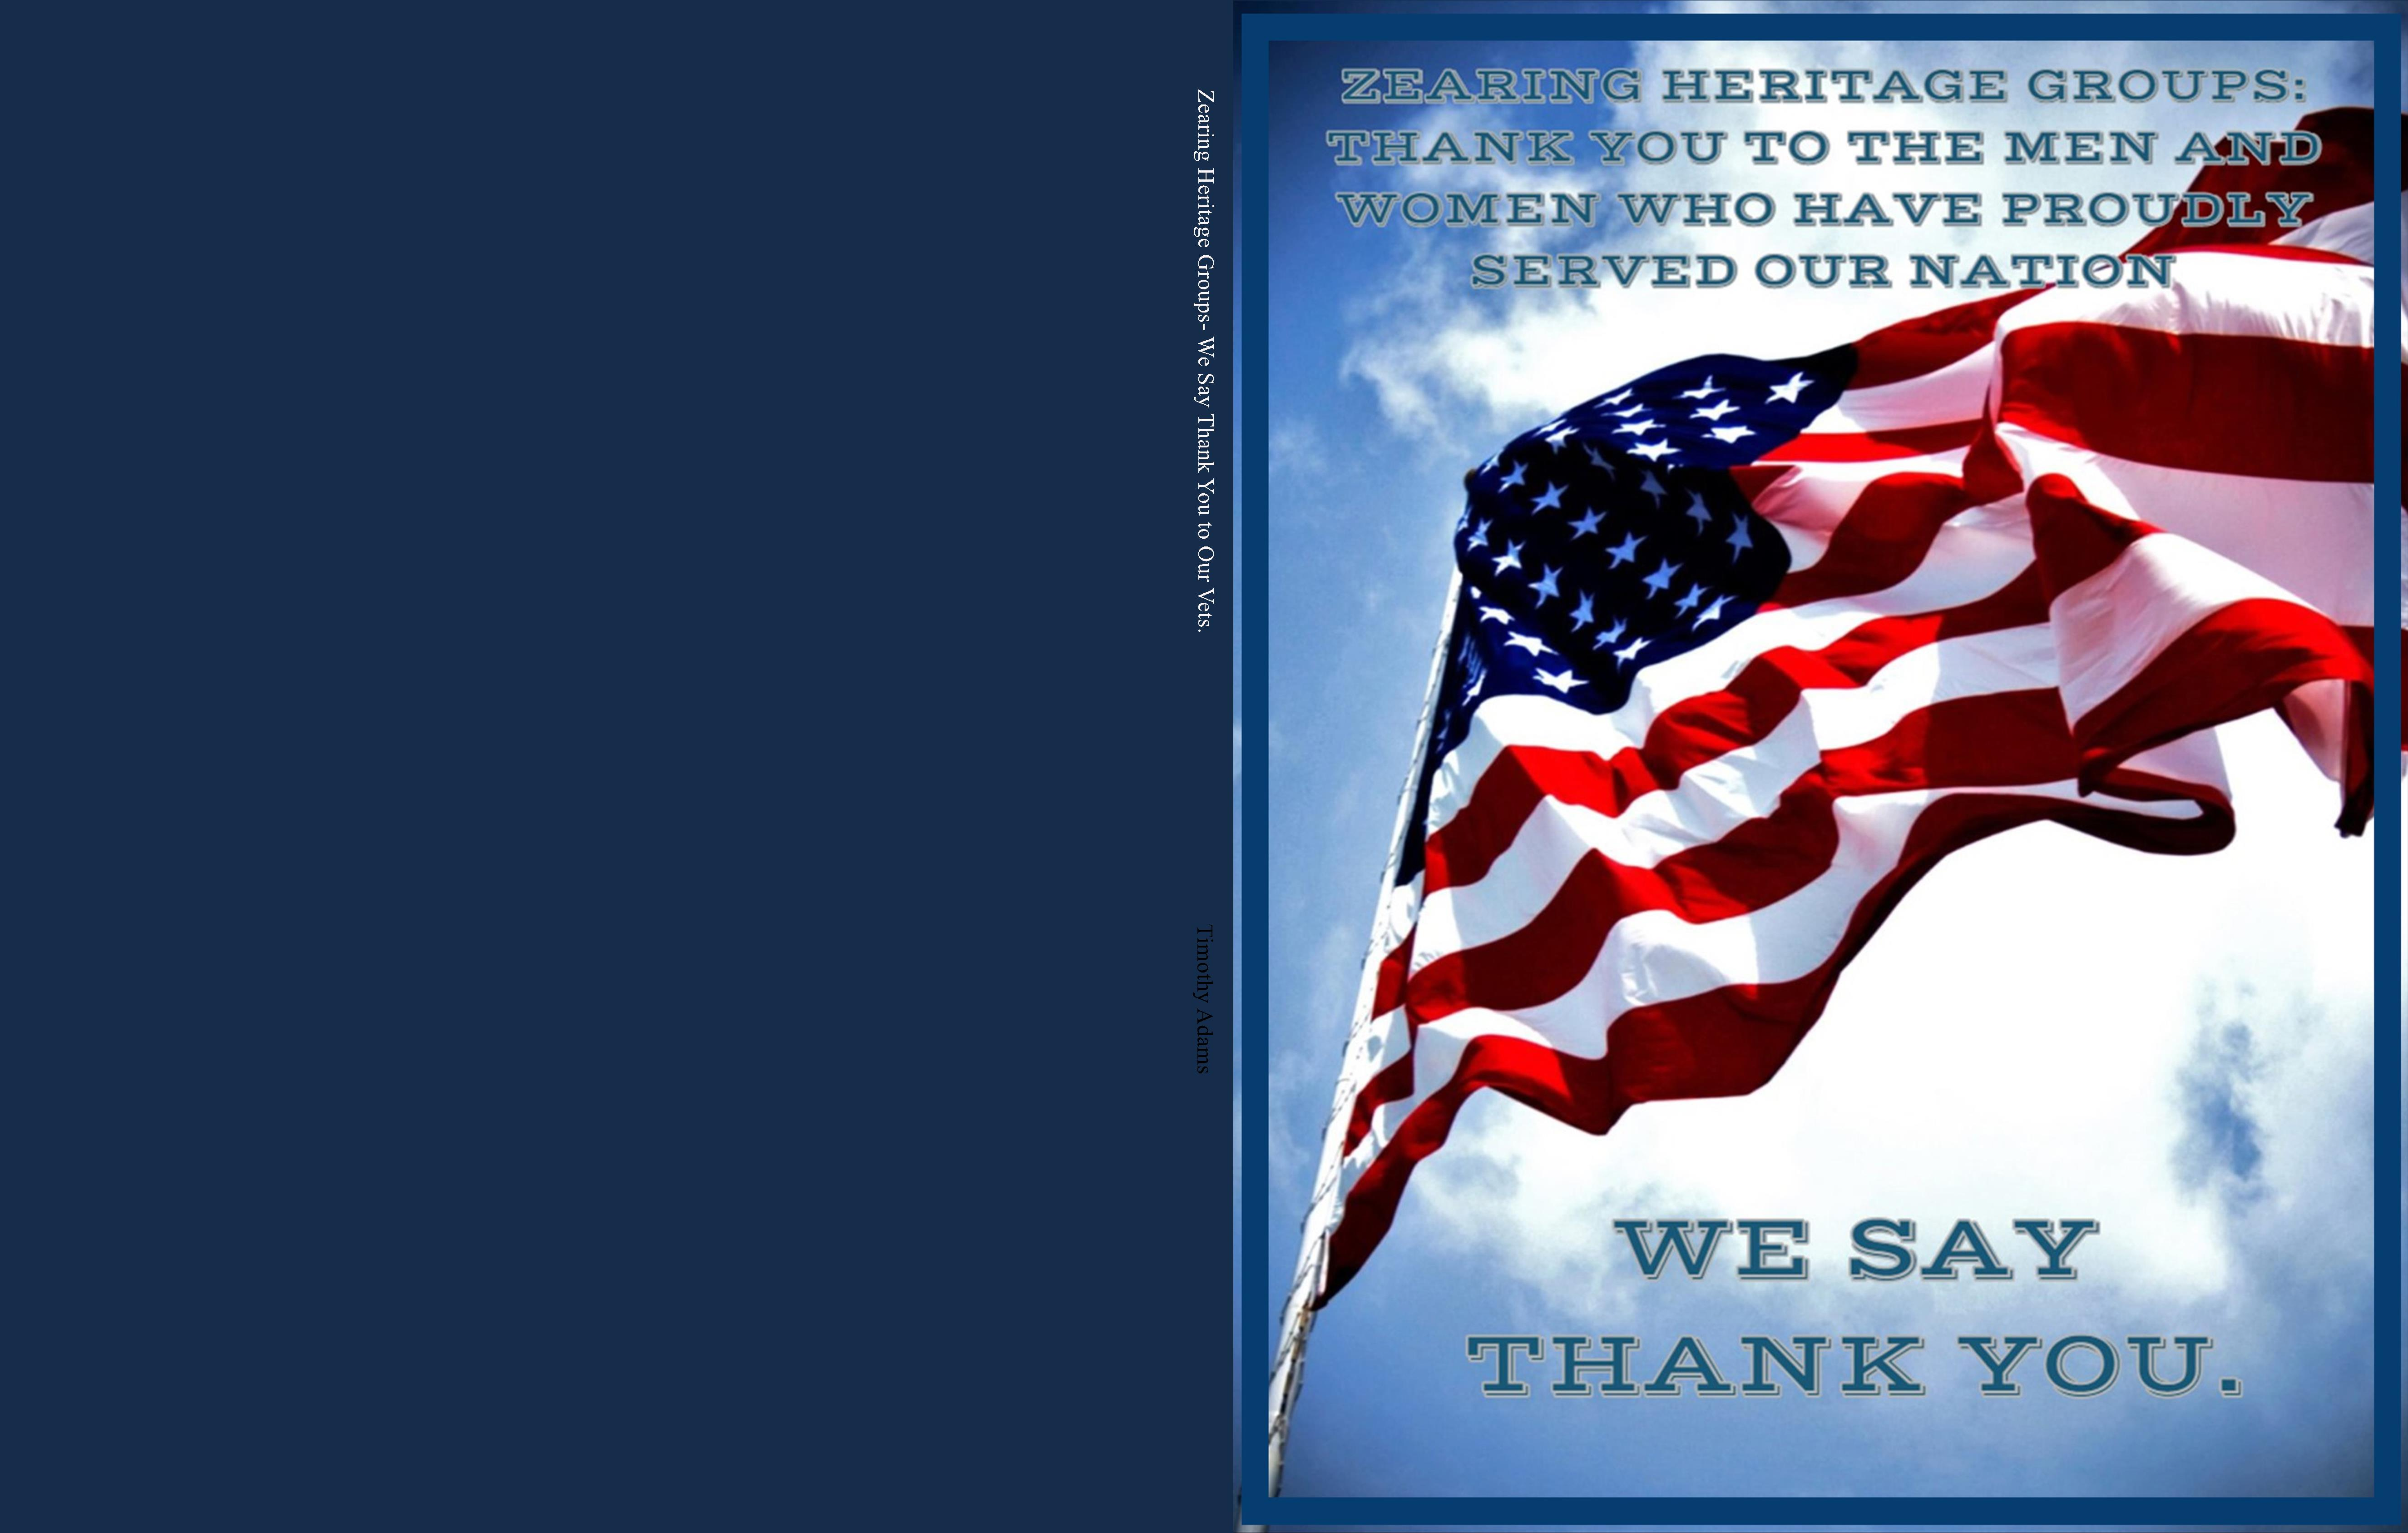 Zearing Heritage Groups- We Say Thank You to Our Vets. cover image